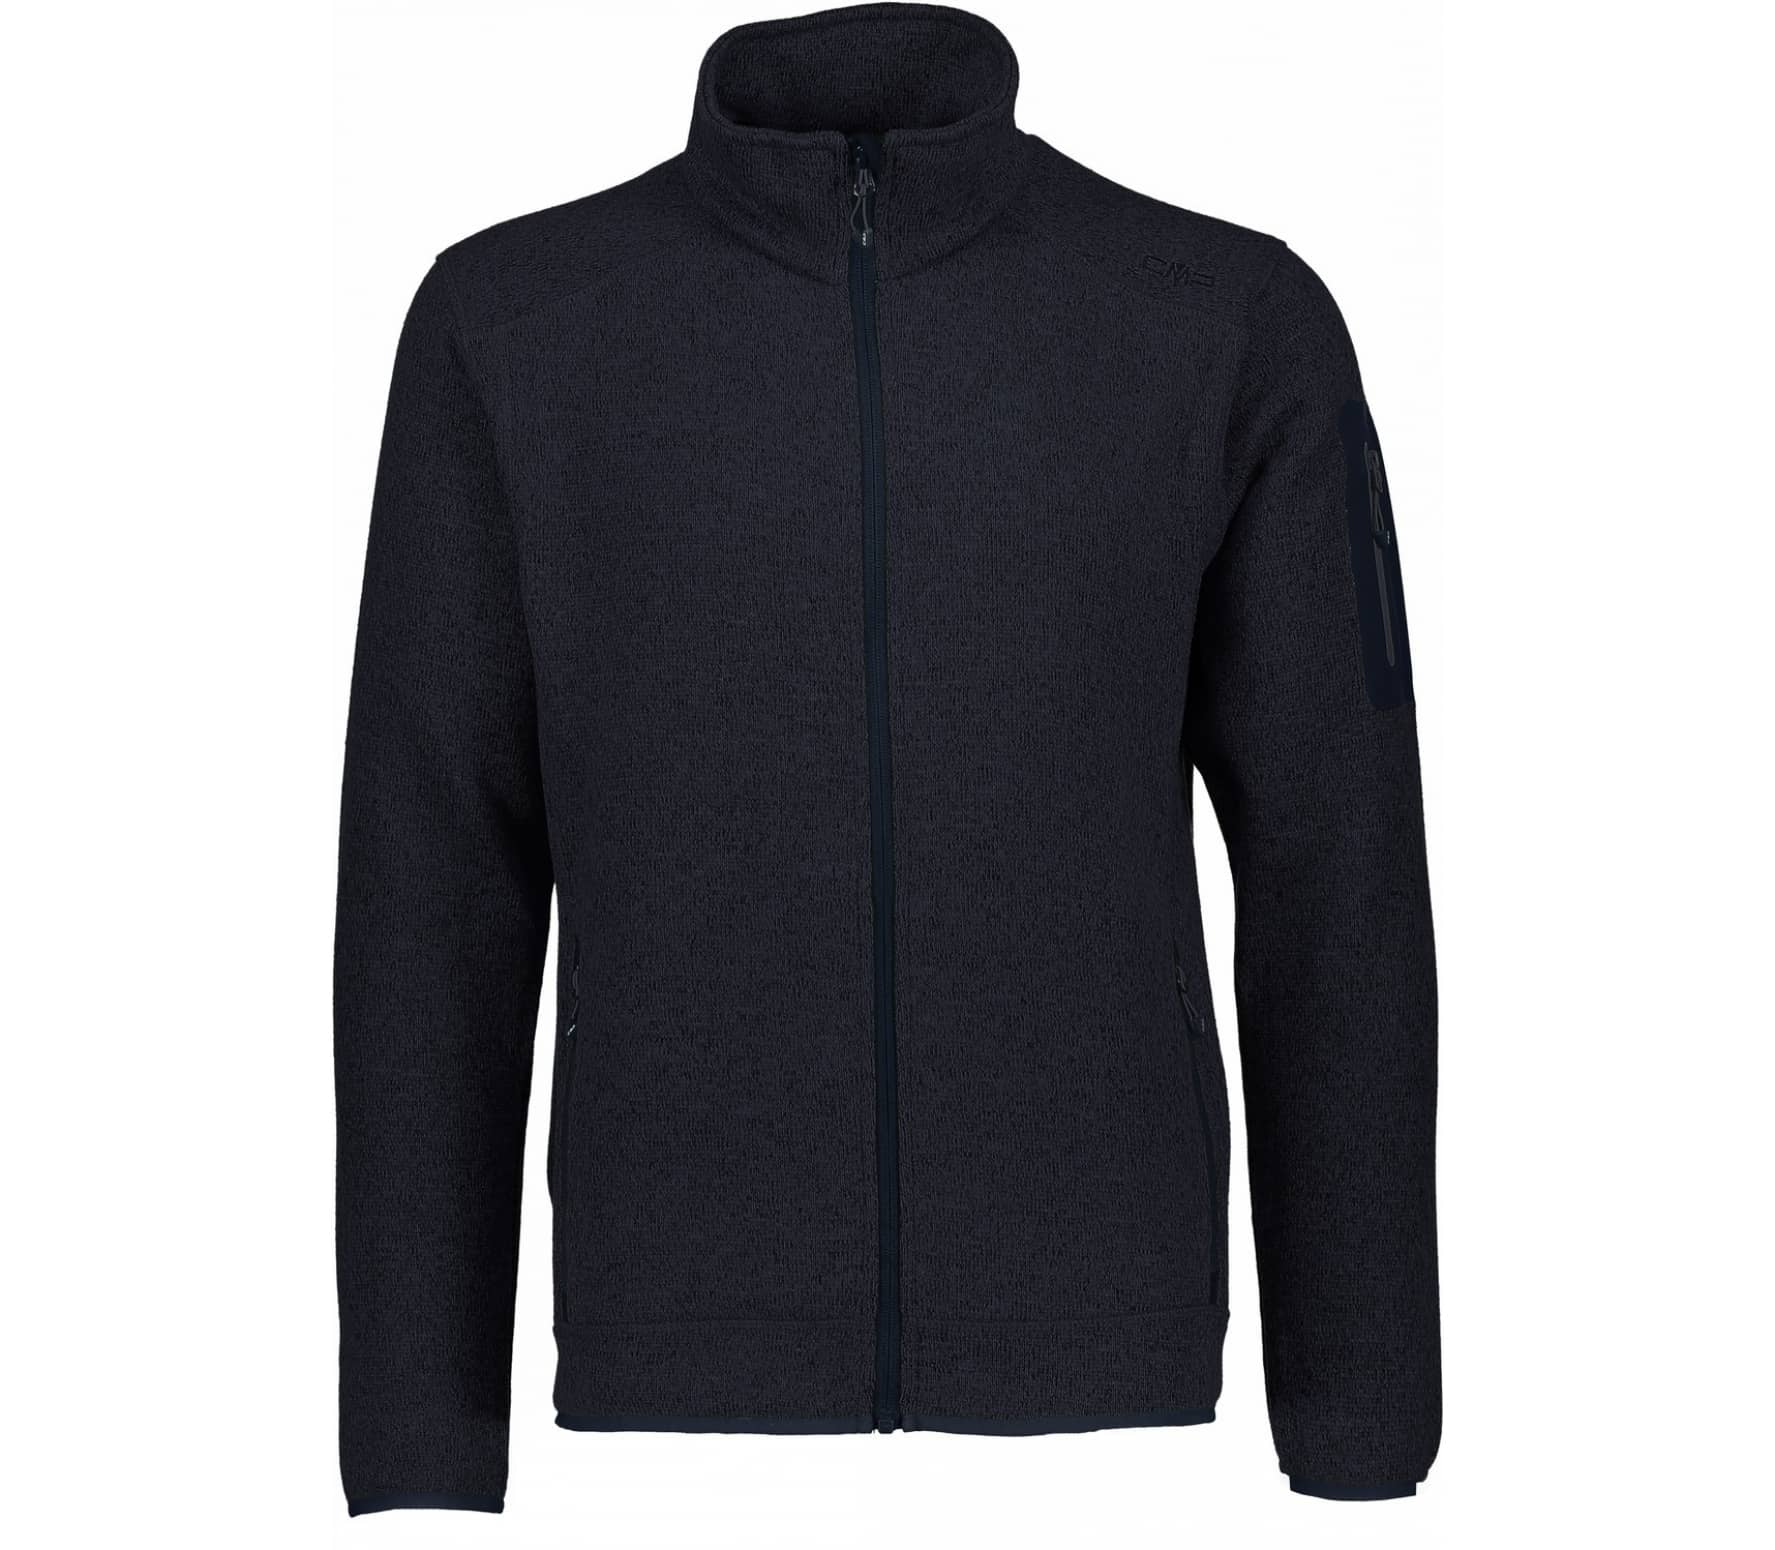 Jacket Para azul Polar Hombre Oscuro Cmp Stretch Chaqueta 1xdvfqn1wH